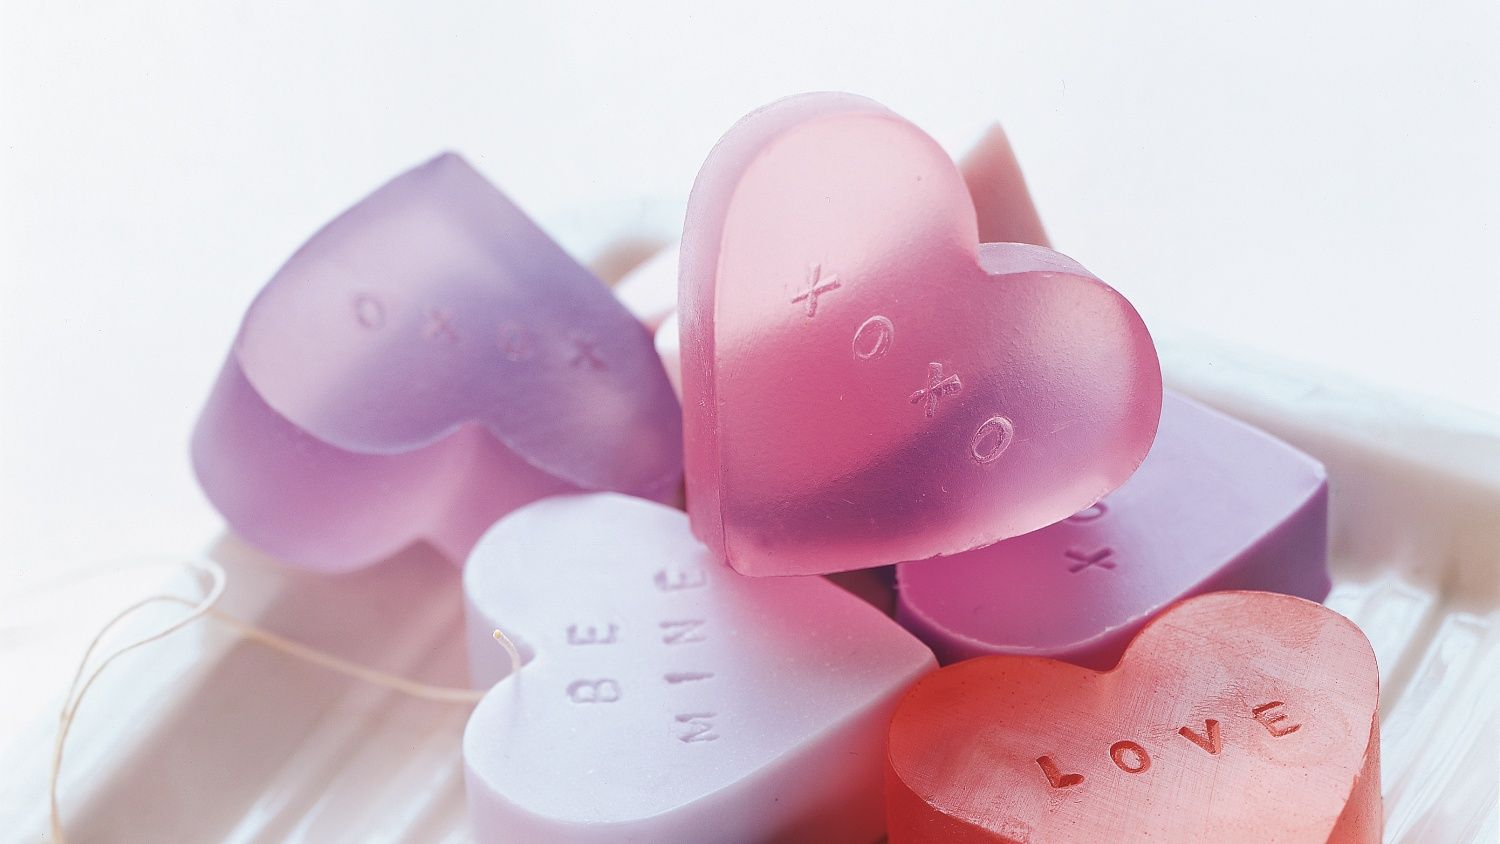 Heartshaped soap love valentines day fatherus day motherus day